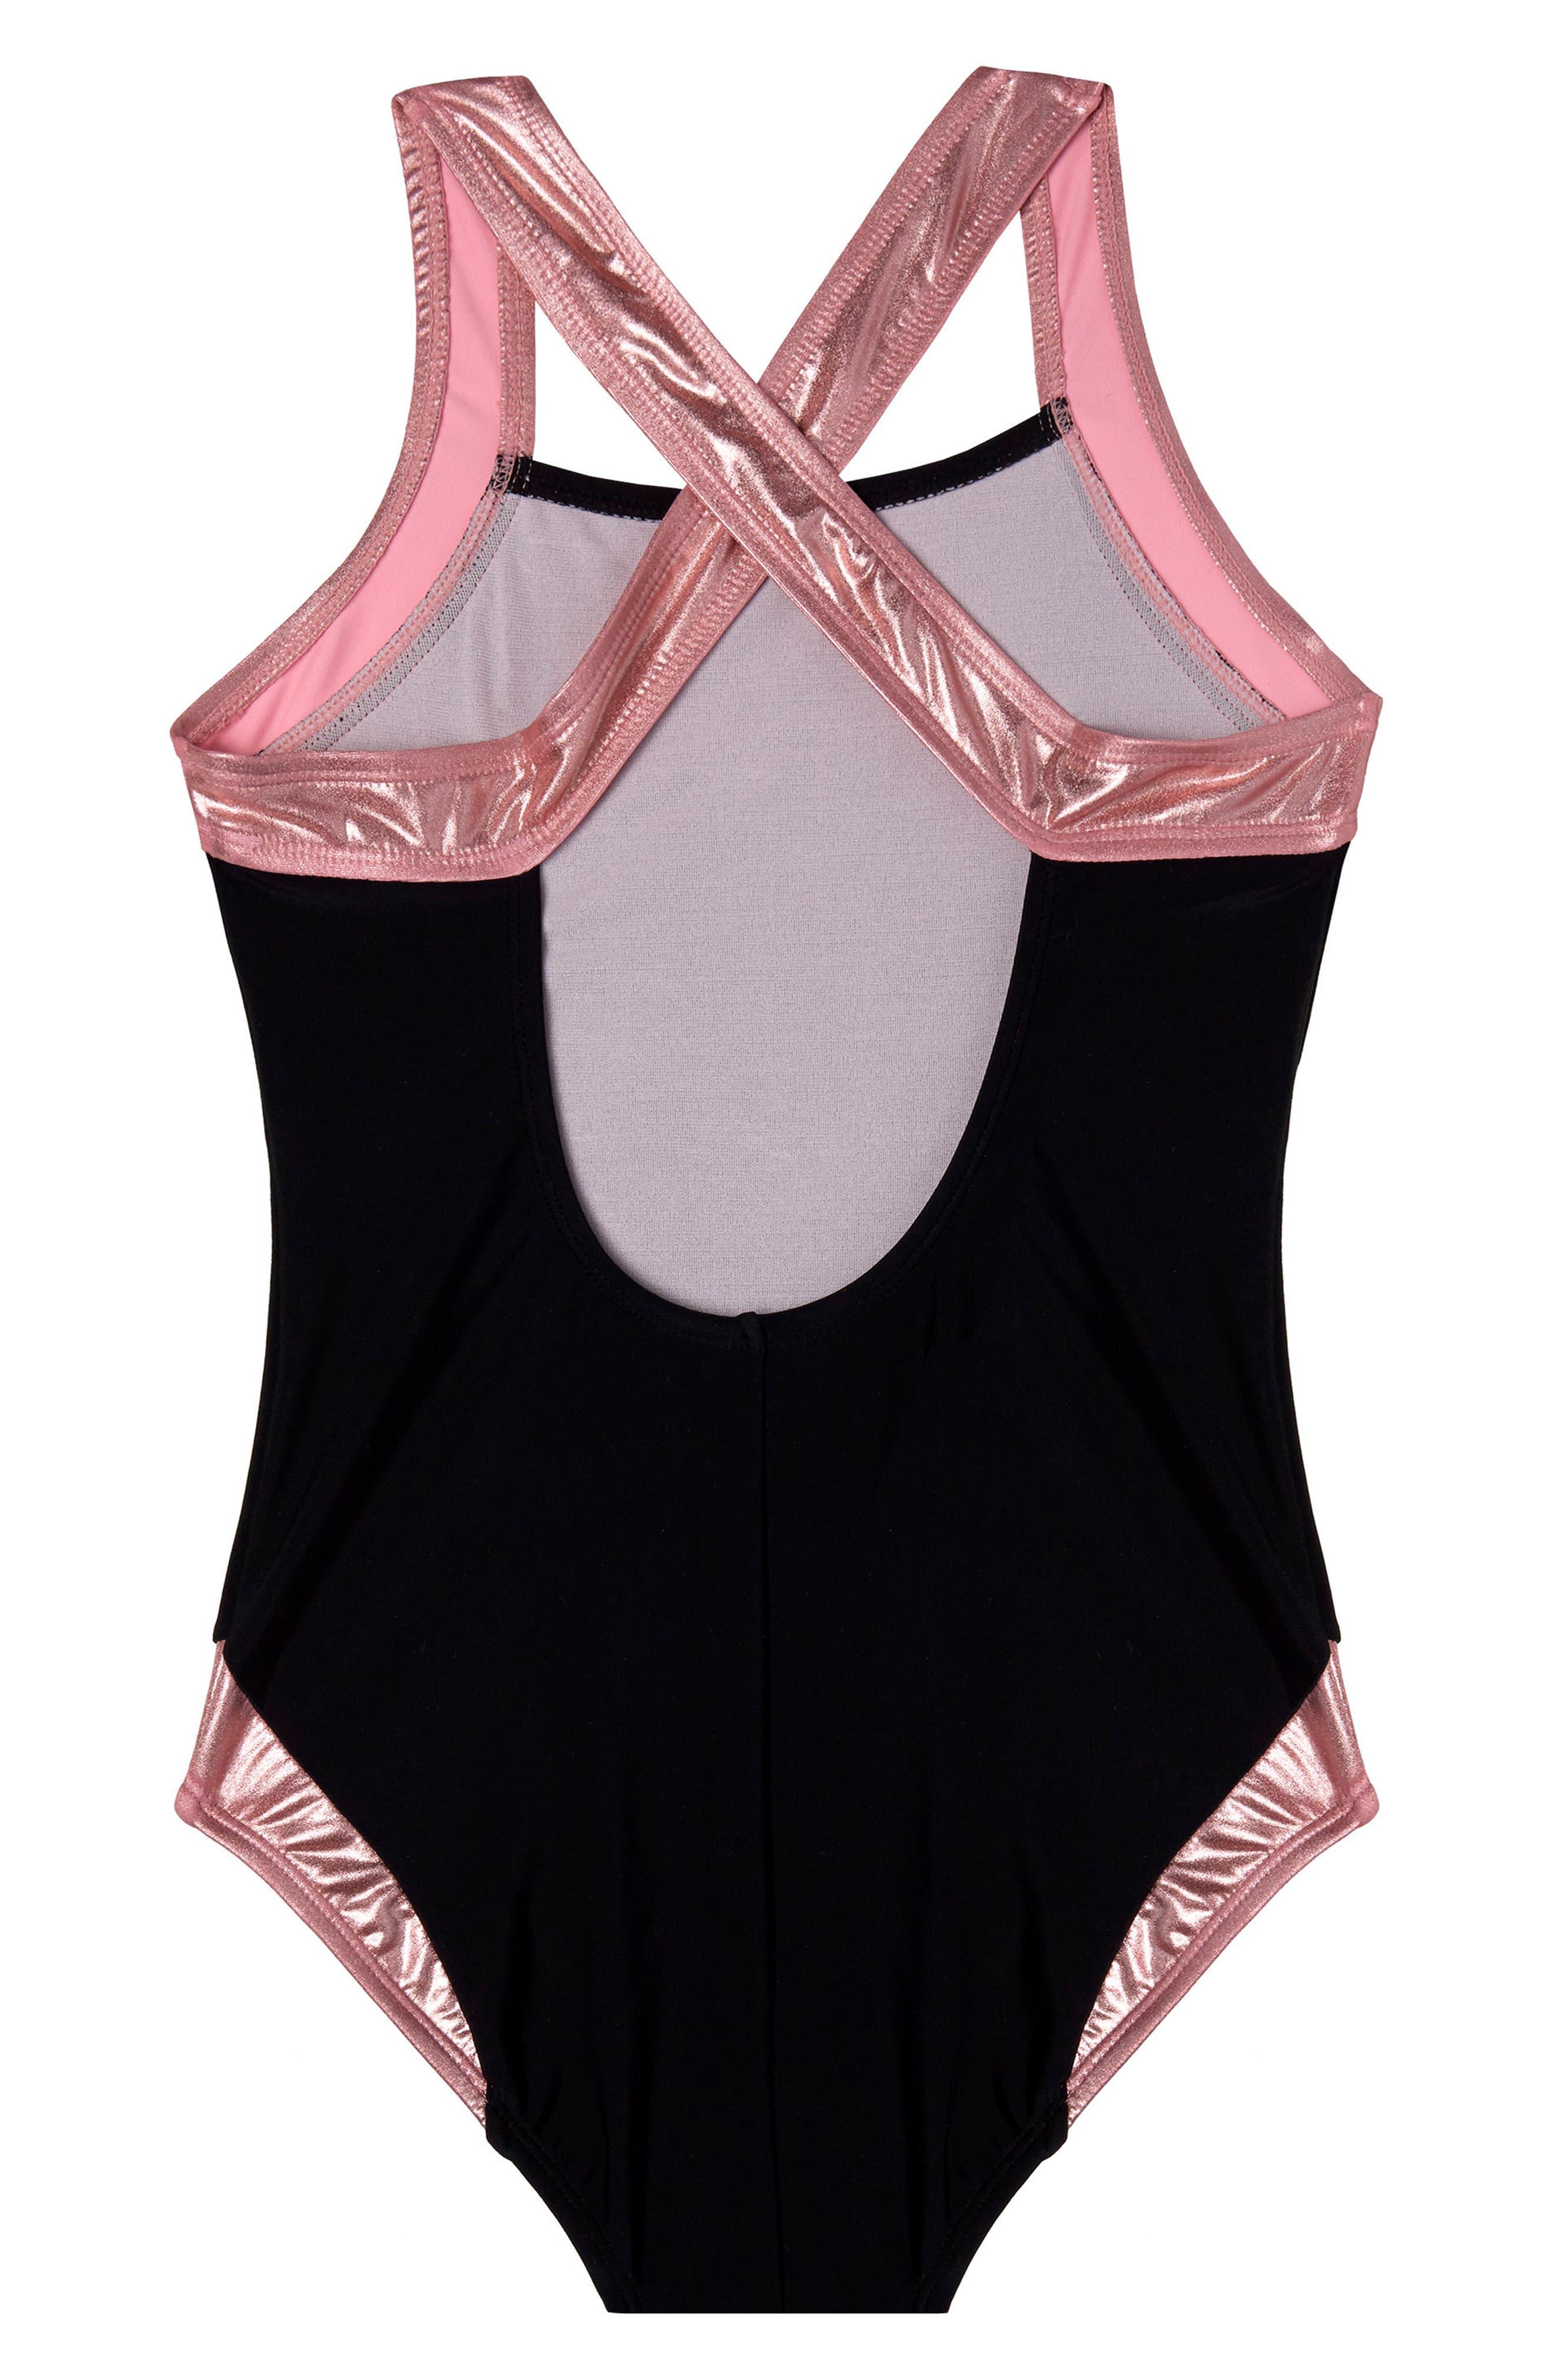 Beach Bound One-Piece Swimsuit,                             Alternate thumbnail 2, color,                             001